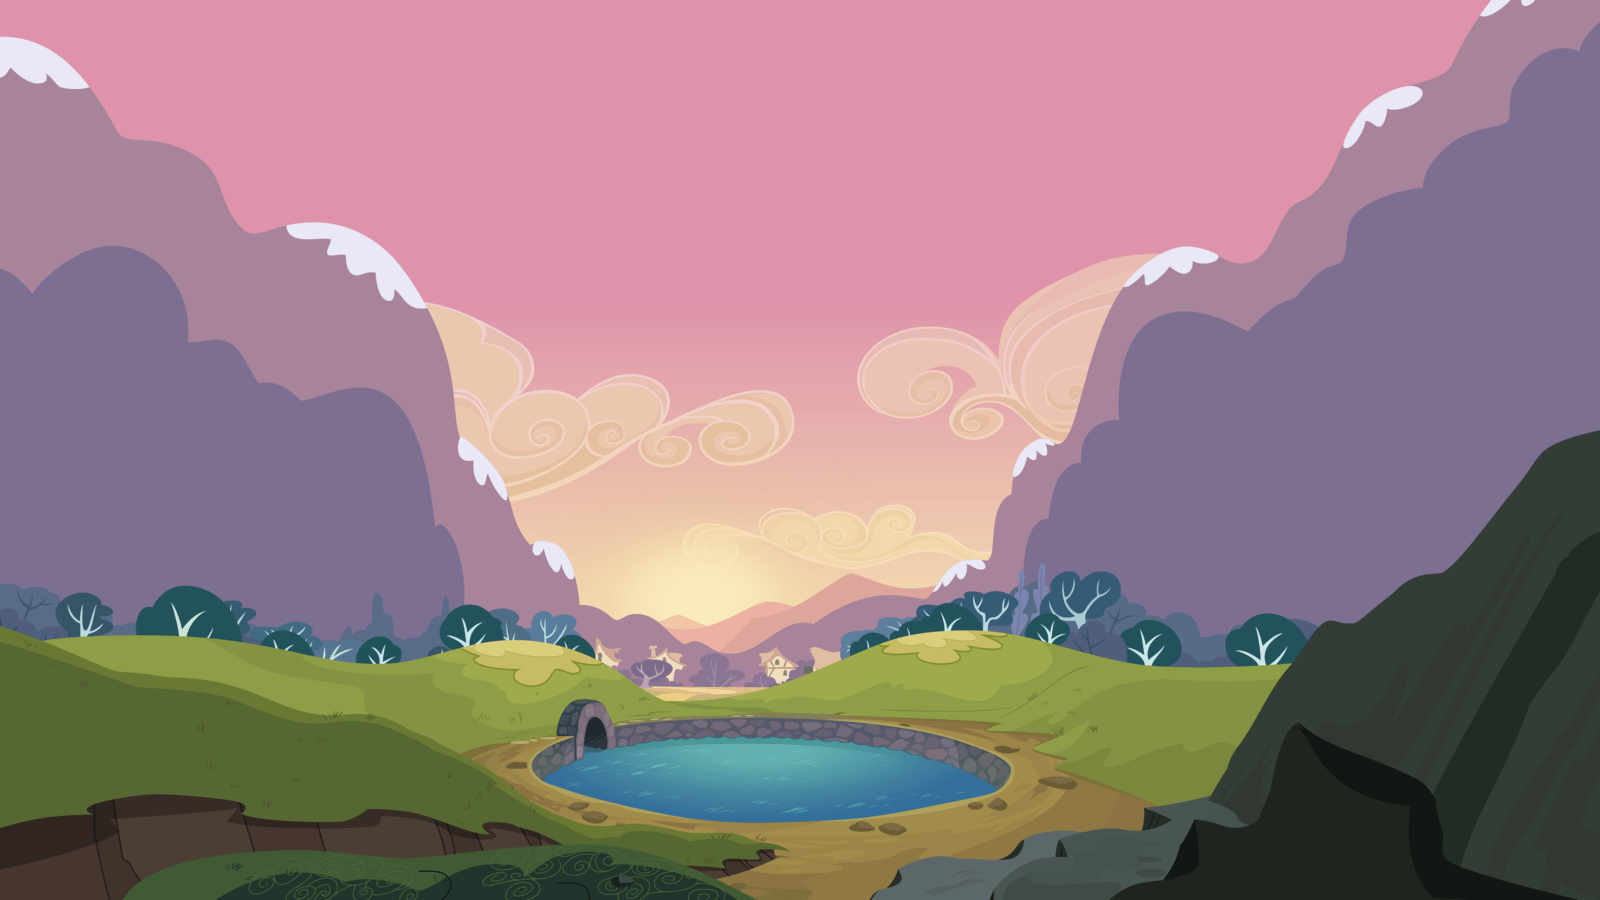 mlp background pony wallpapers - photo #45